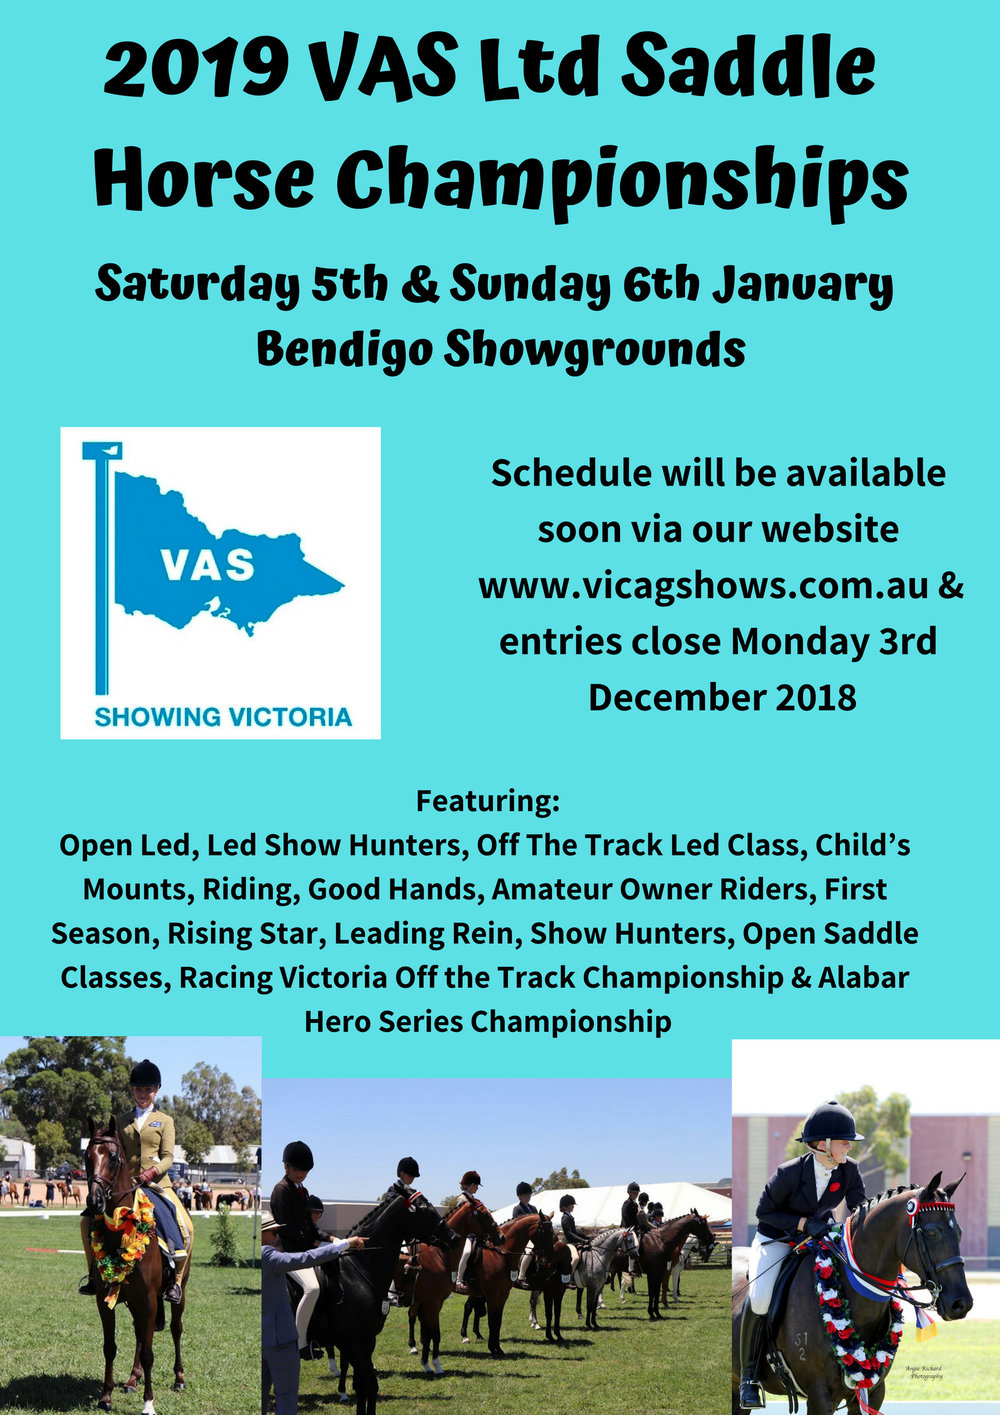 2019 VAS Ltd Saddle Horse Championships.jpg